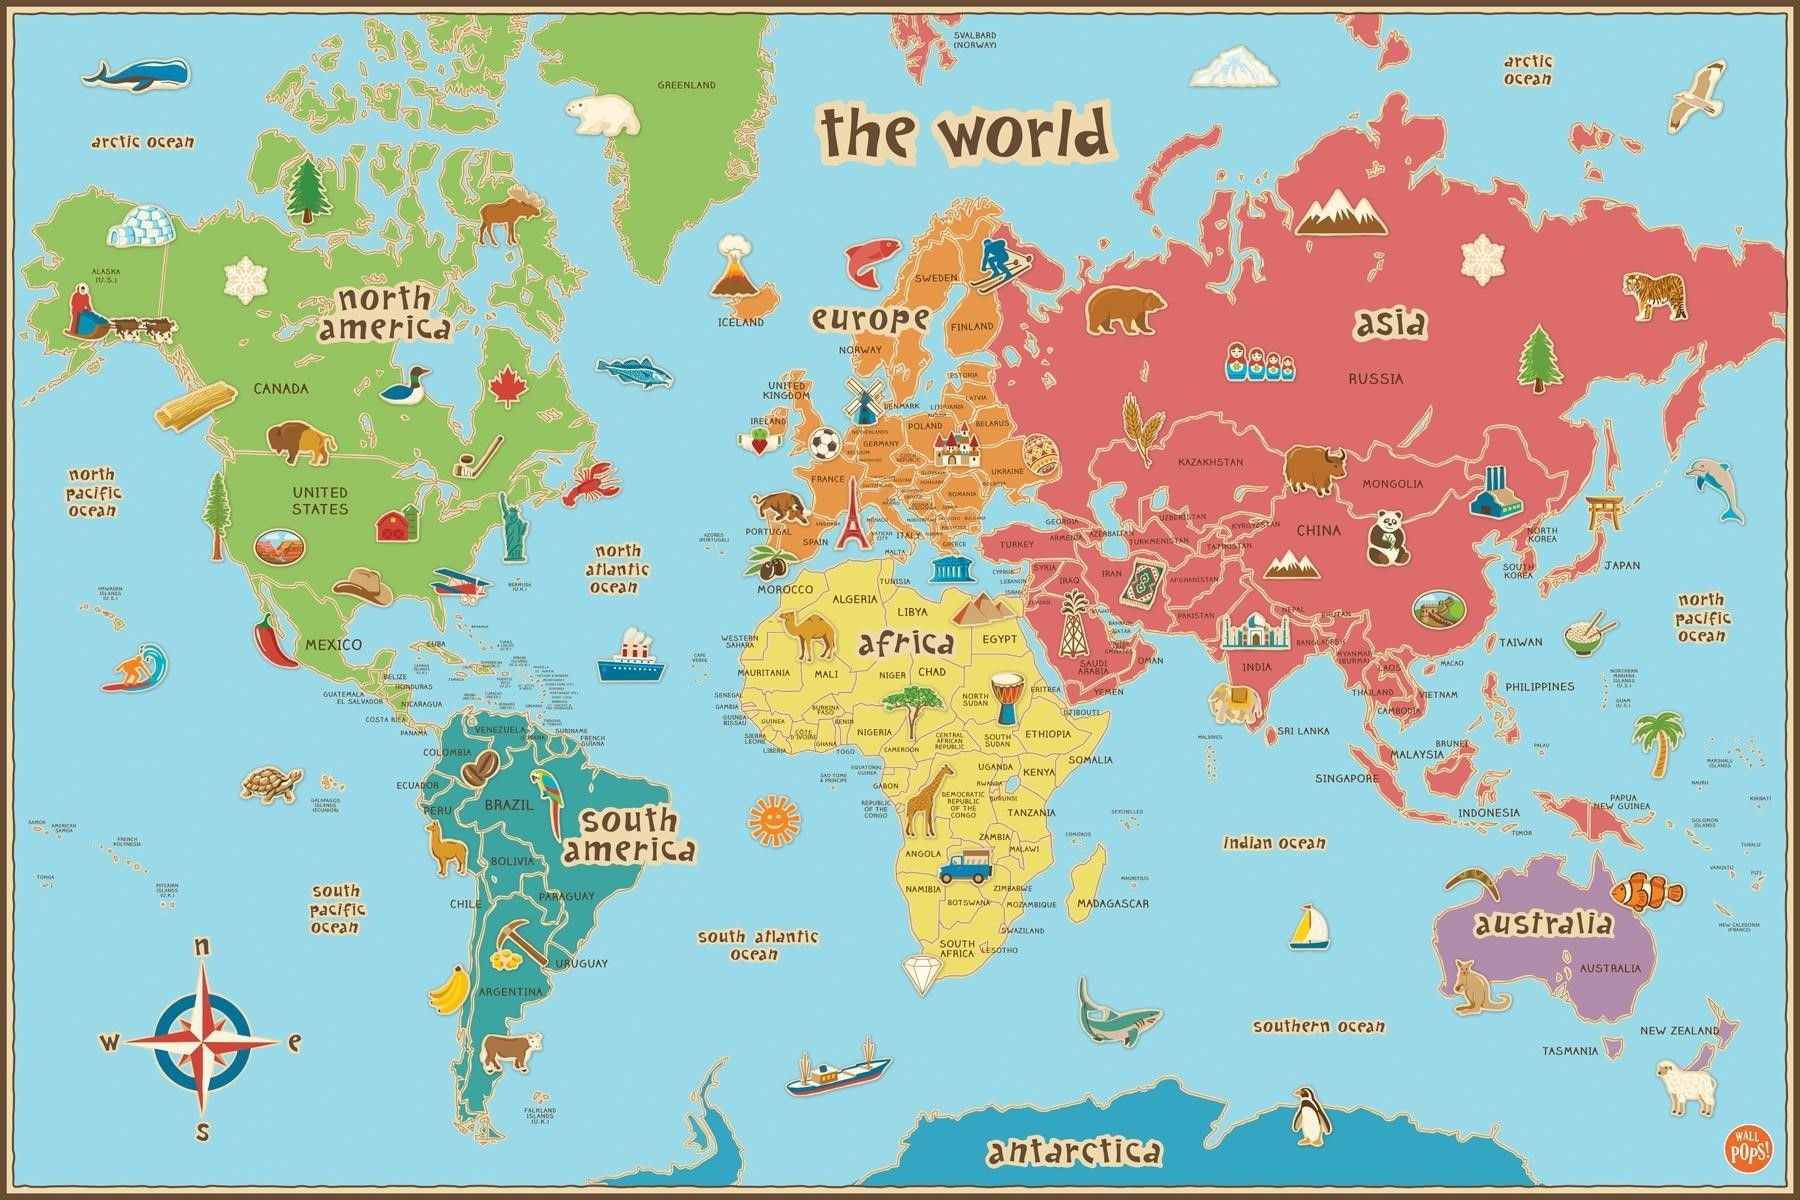 Free Printable World Map For Kids Maps And | Gary's Scattered Mind - Free Printable Maps For Kids